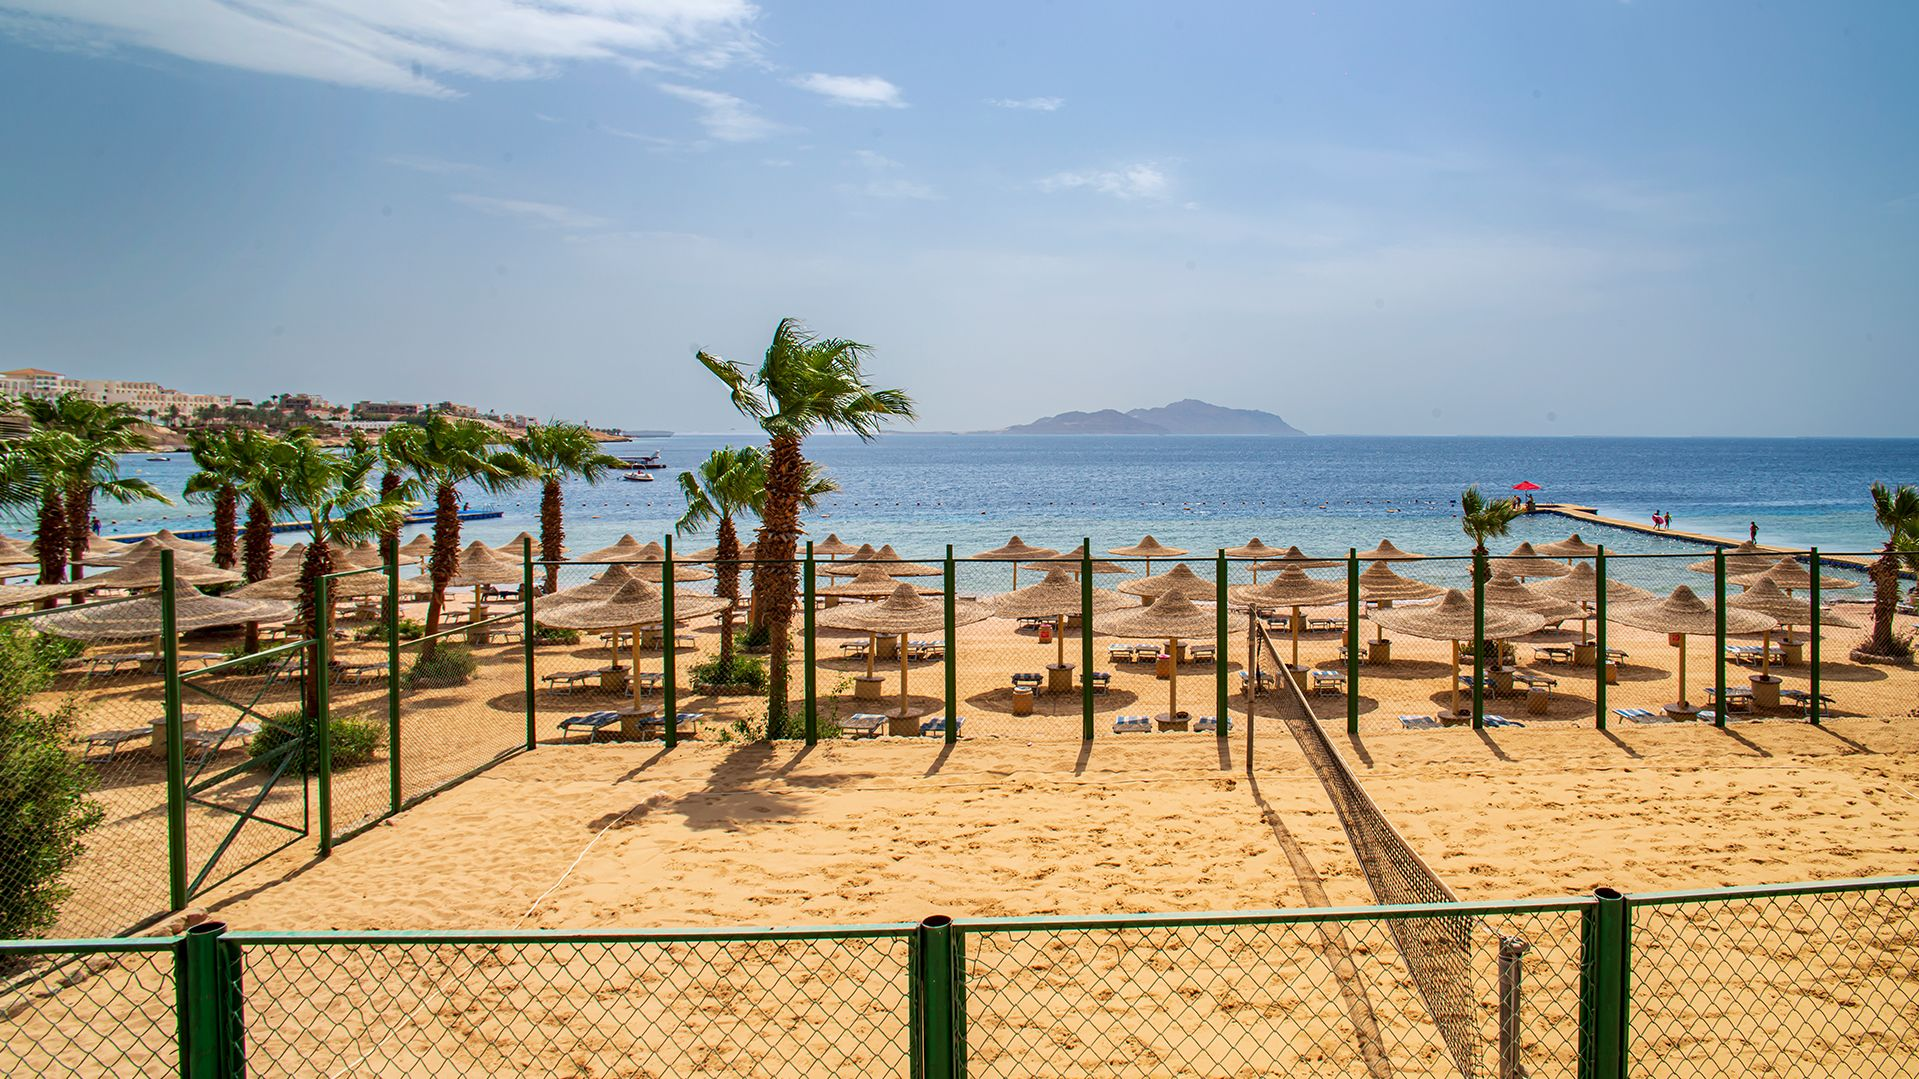 A Beach With Palm Trees And A Fence